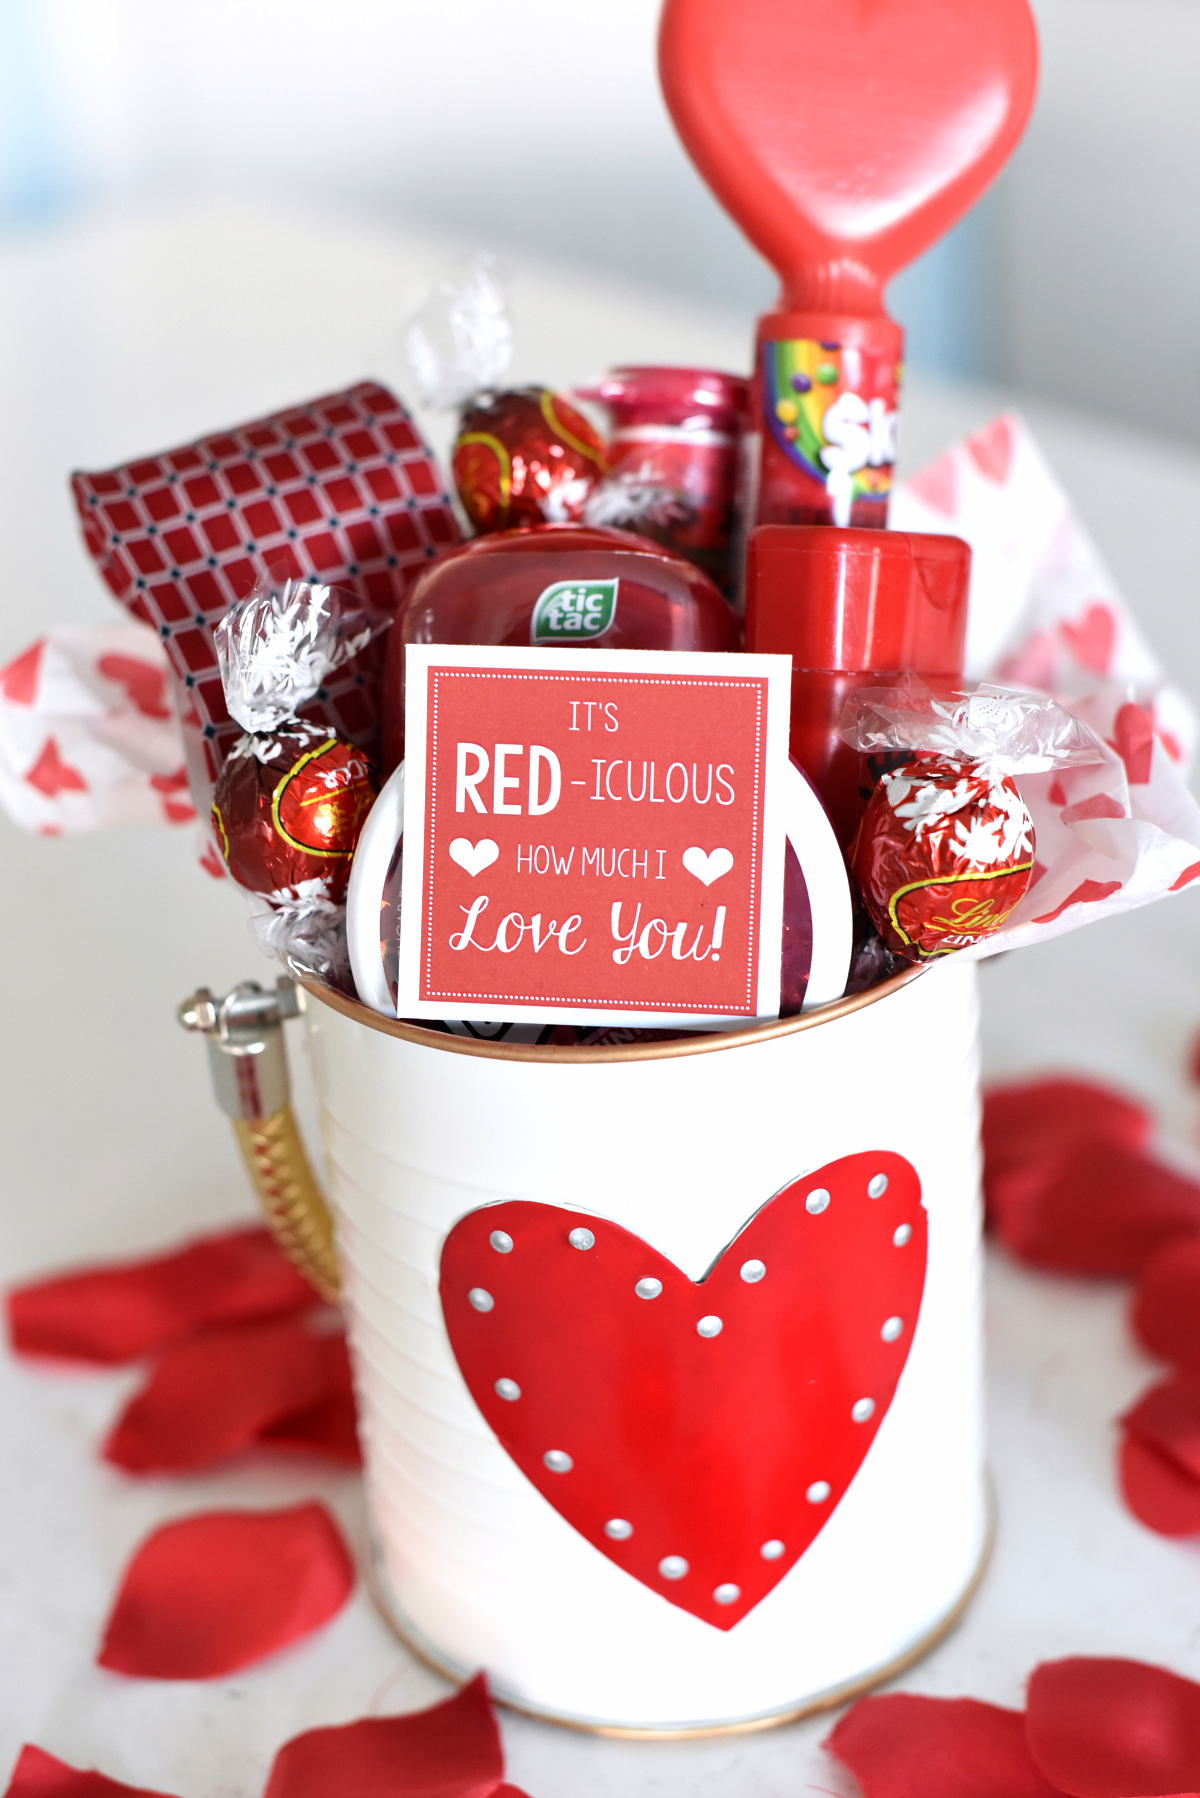 Fun Ways To Make Valentine S Day Special For Your Spouse Fun Squared